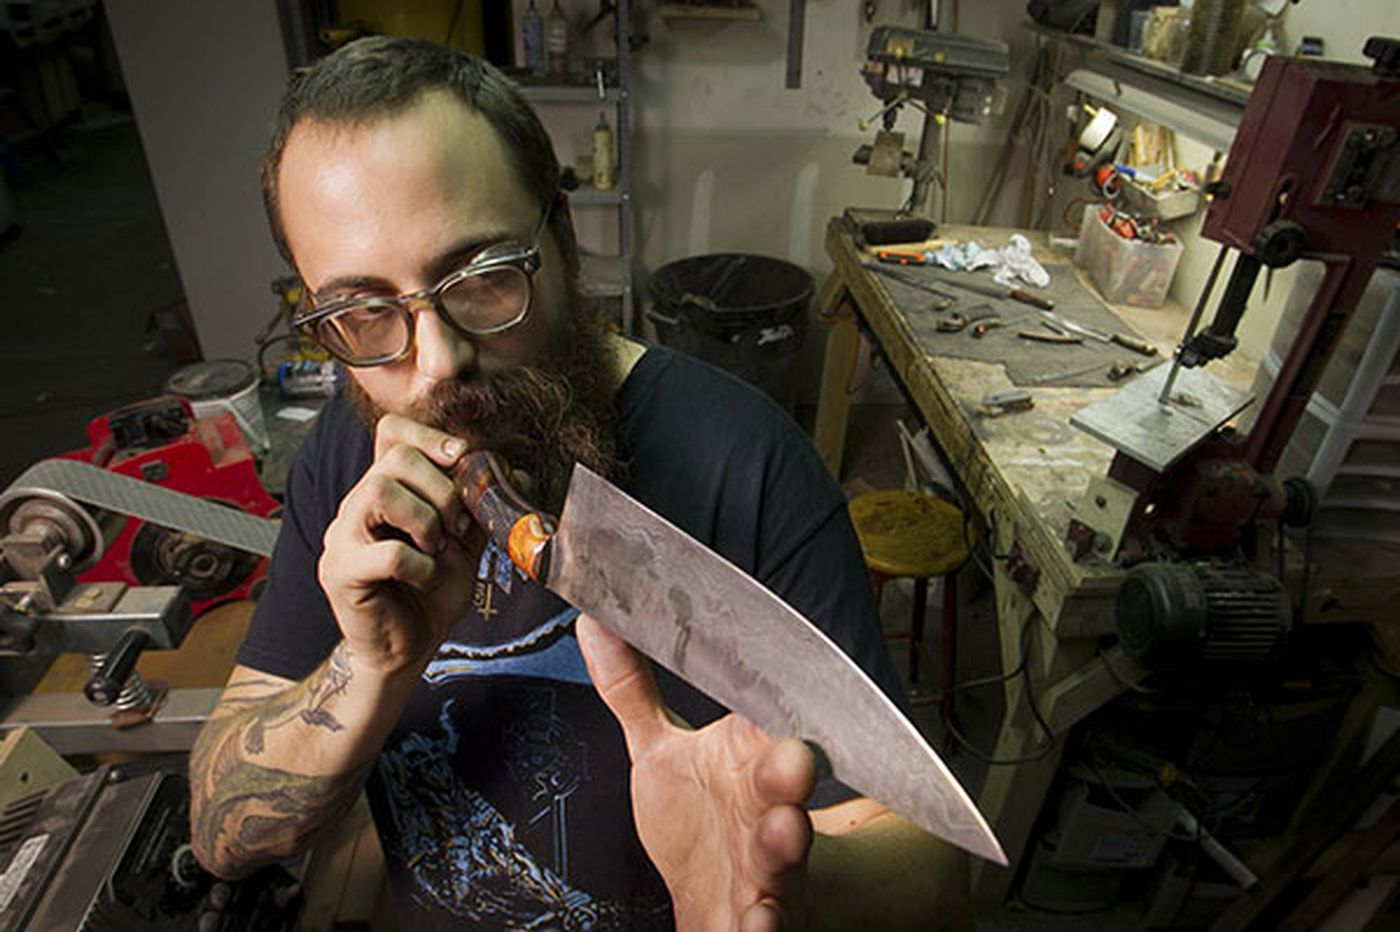 Brewerytown knife-maker's on point with his BiltSharp products